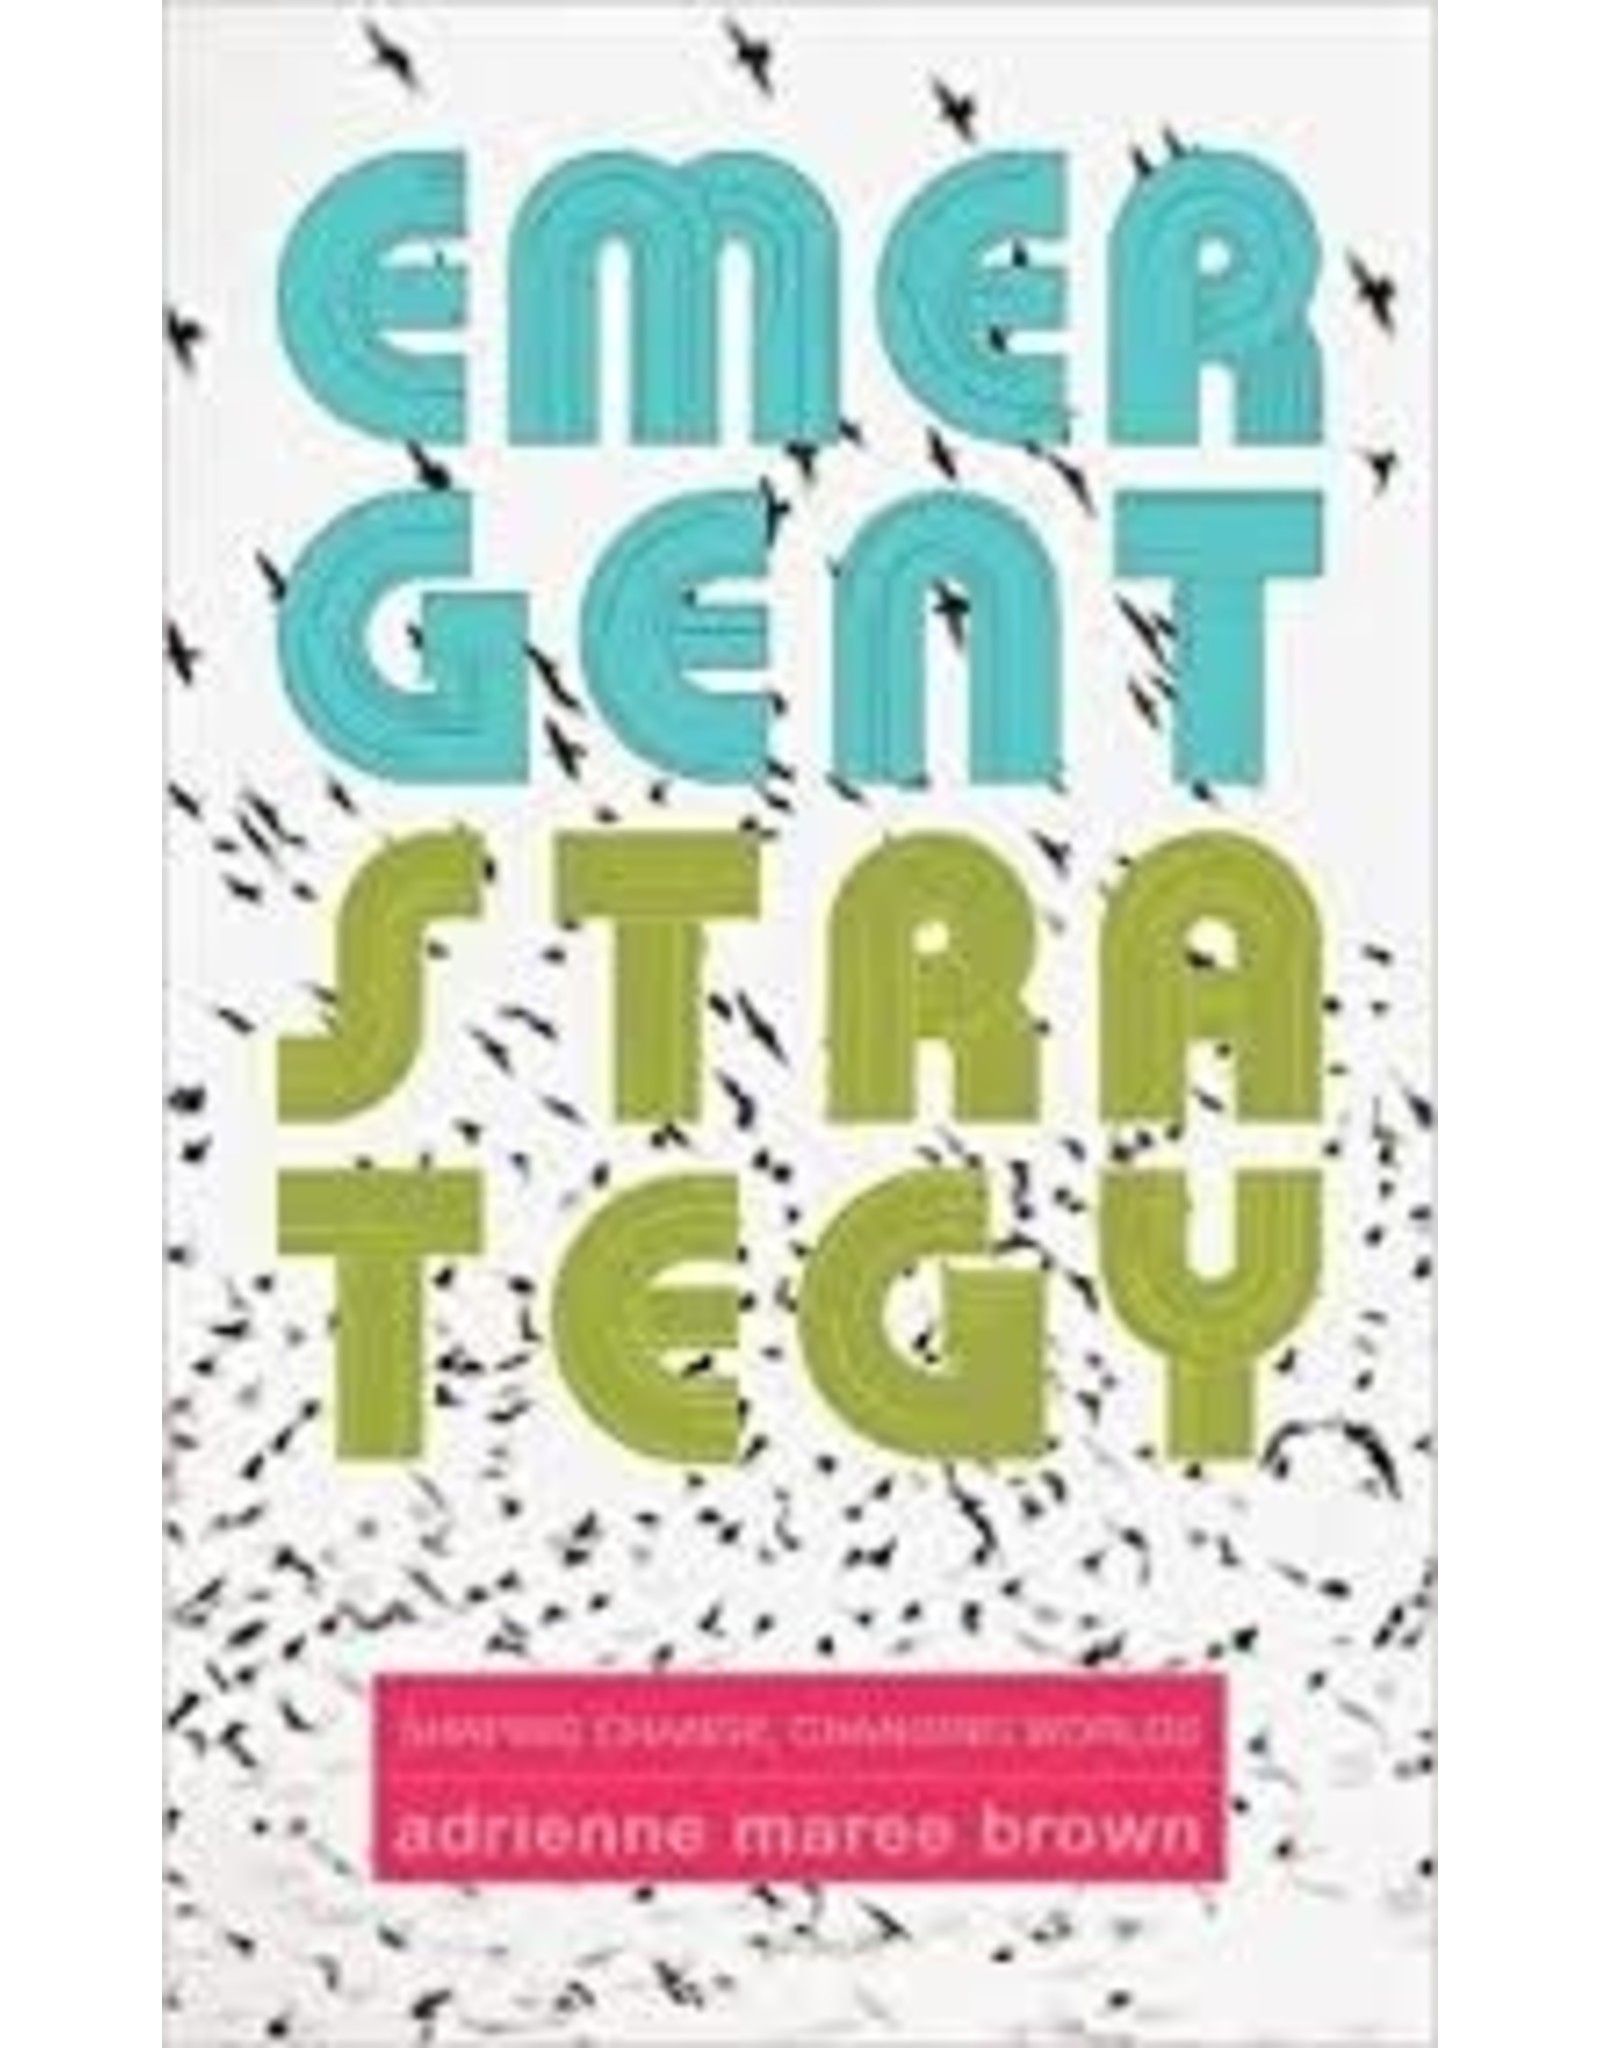 Books Emergent Strategy by Adrienne Maree Brown (Women's Conference)